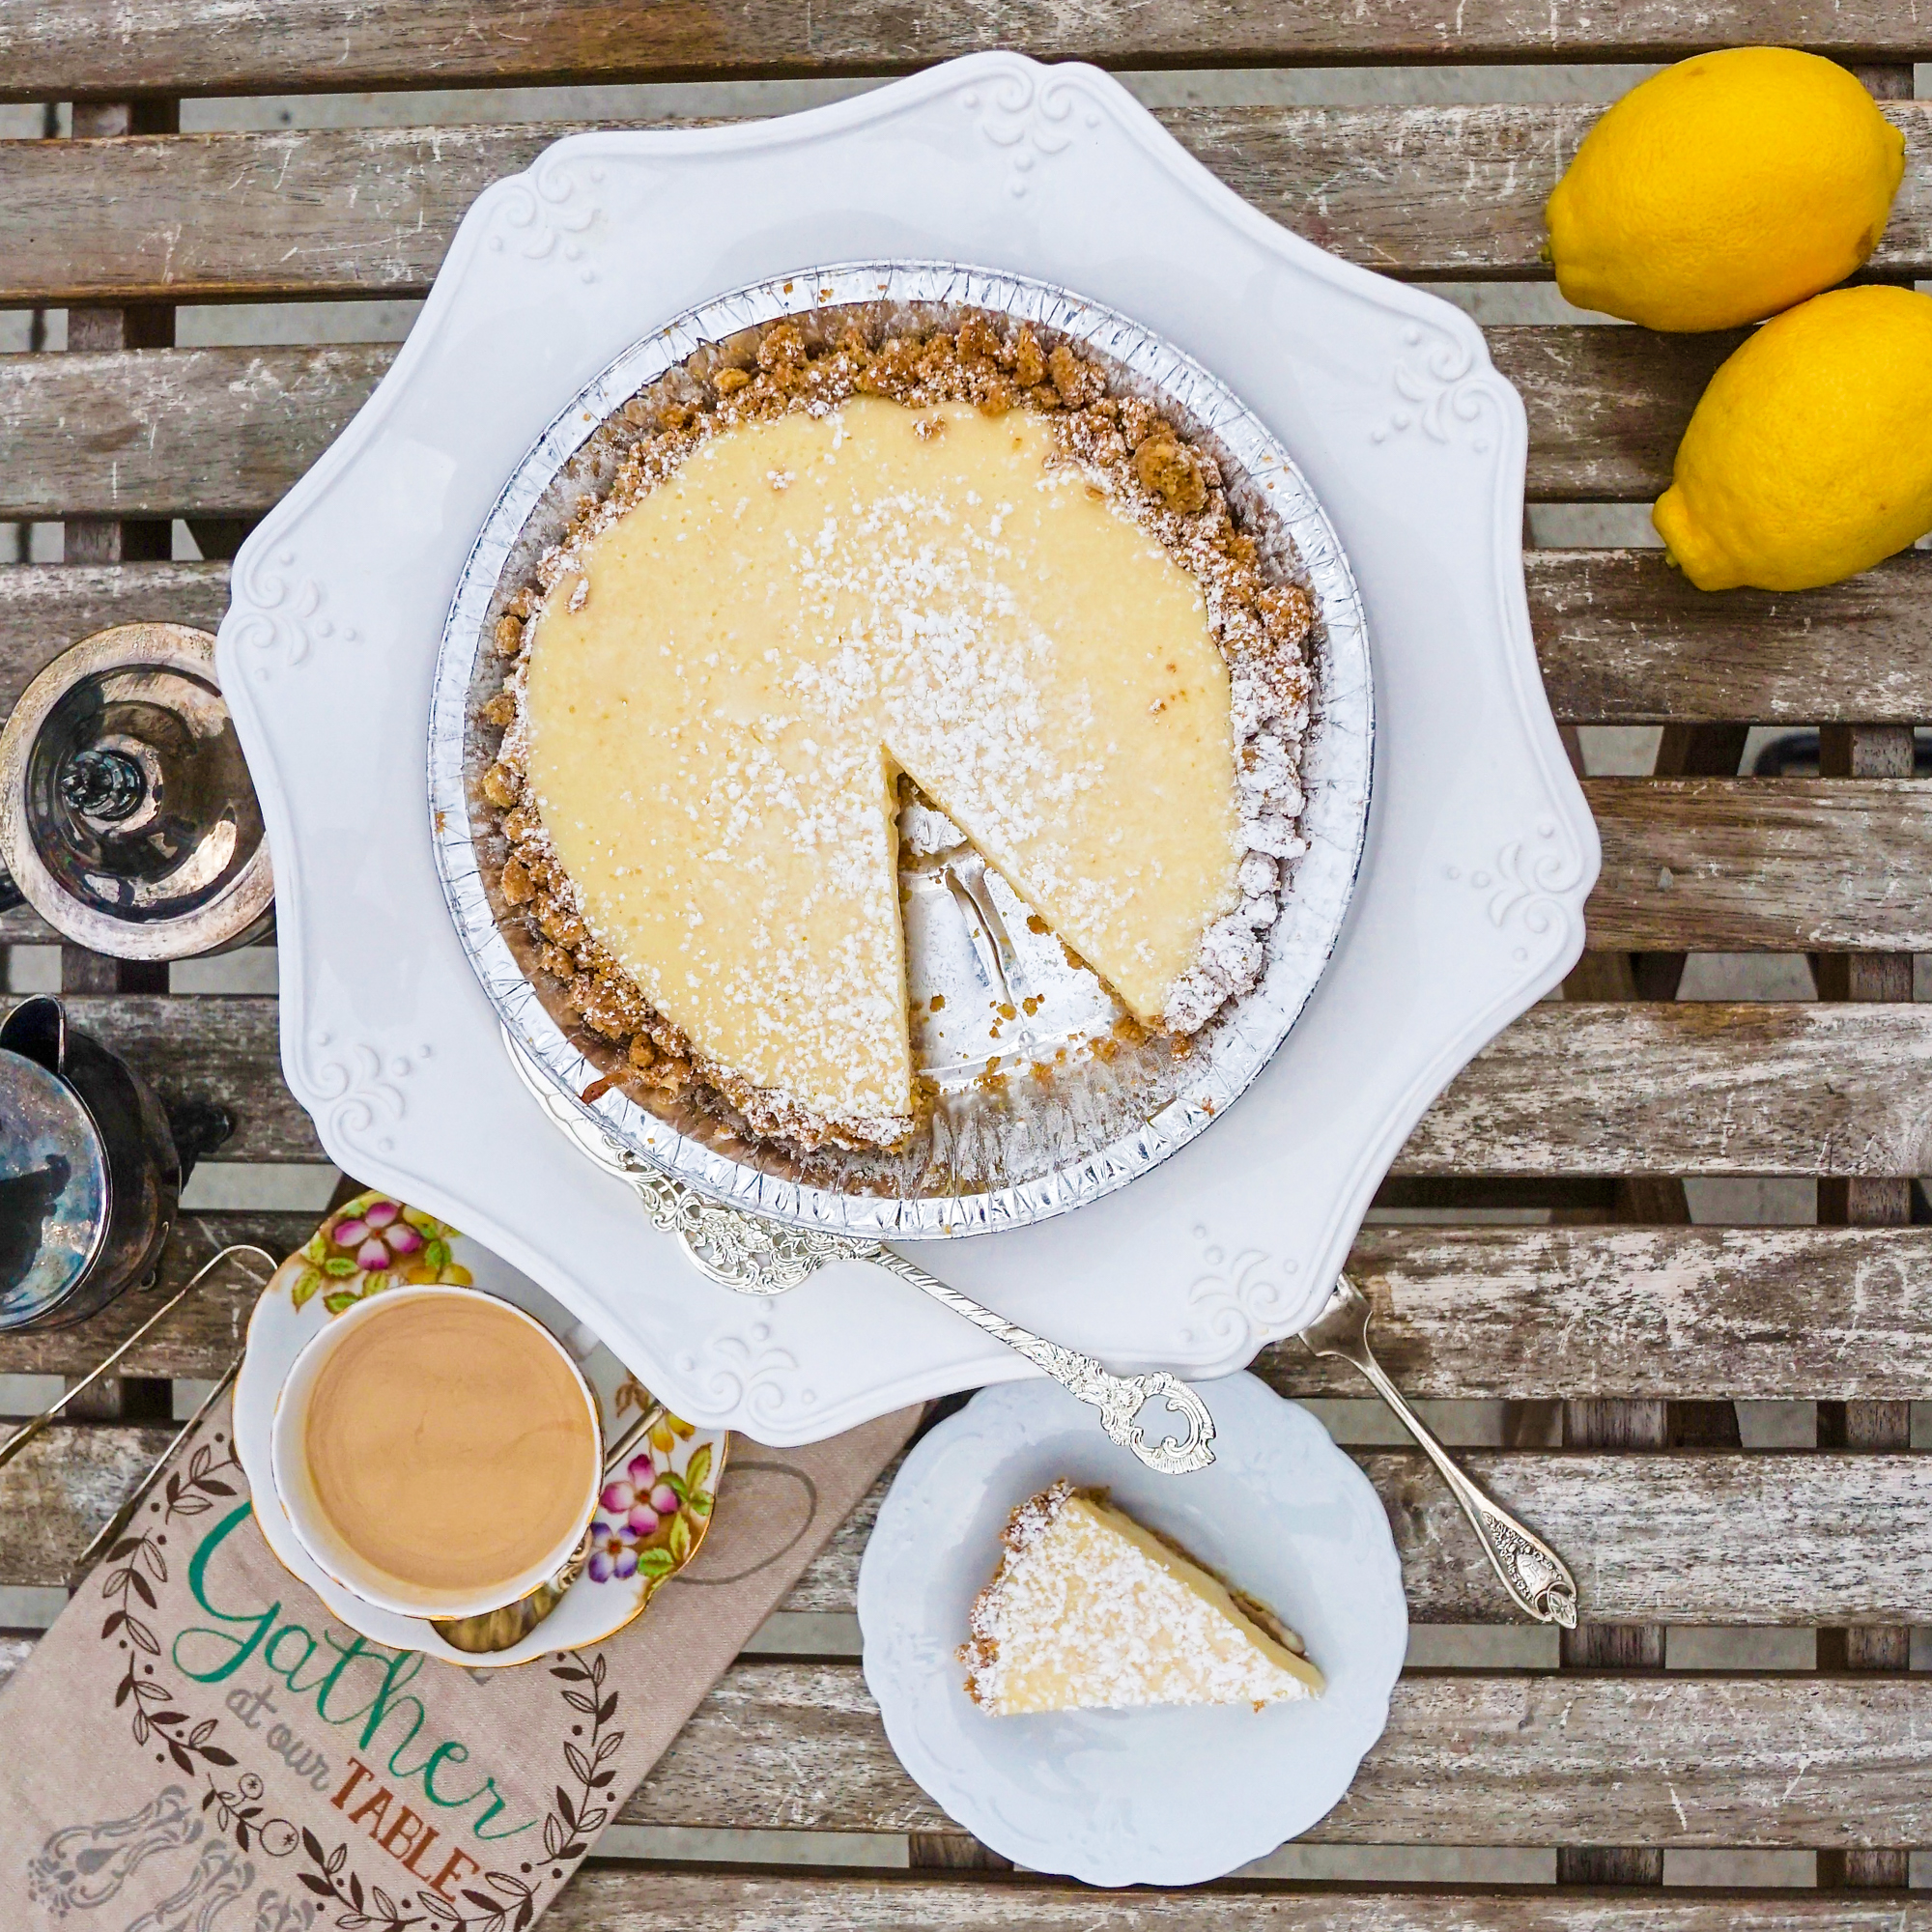 A pie in a metal tin with a cookie crust and a creamy yellow filling with one slice removed. It's dusted with powdered sugar.